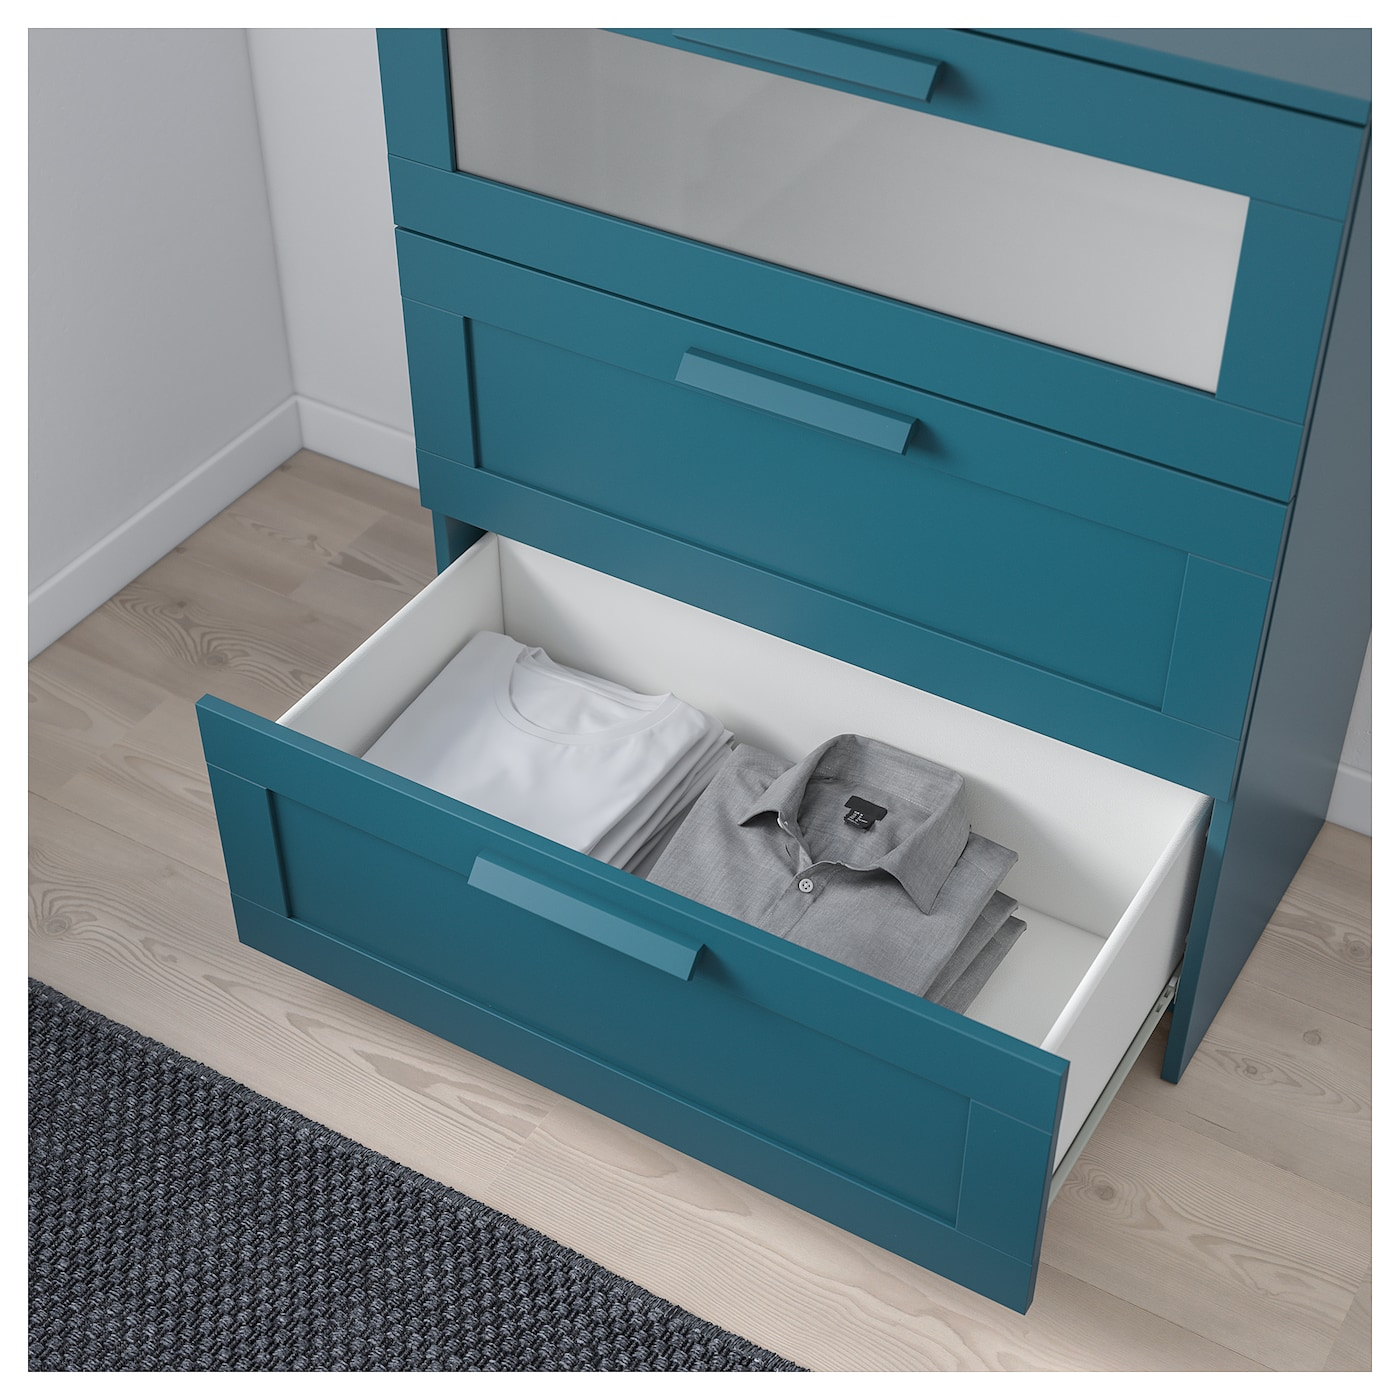 BRIMNES Ladekast 3 lades Donker groenblauw frosted glas 78×95 cm IKEA